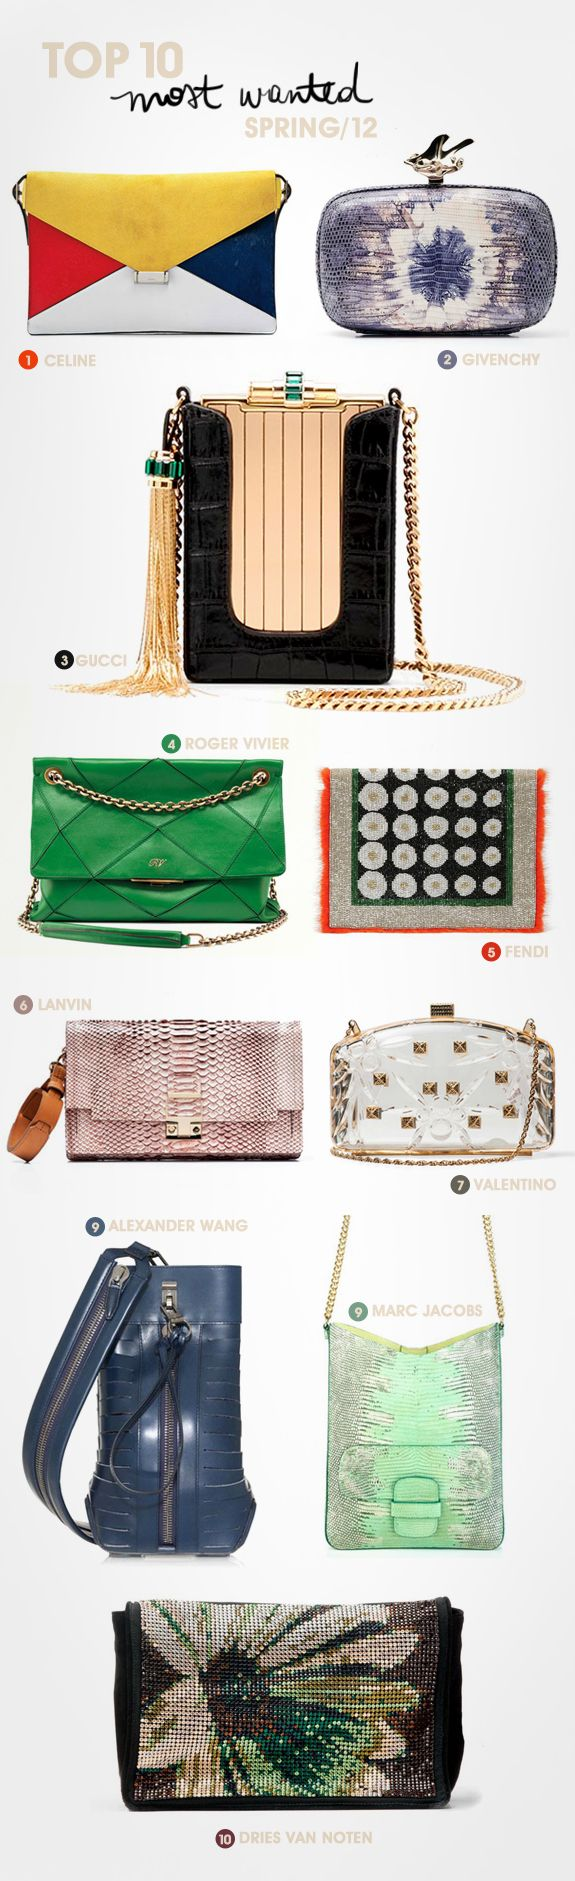 Most wanted bags for Spring 2012